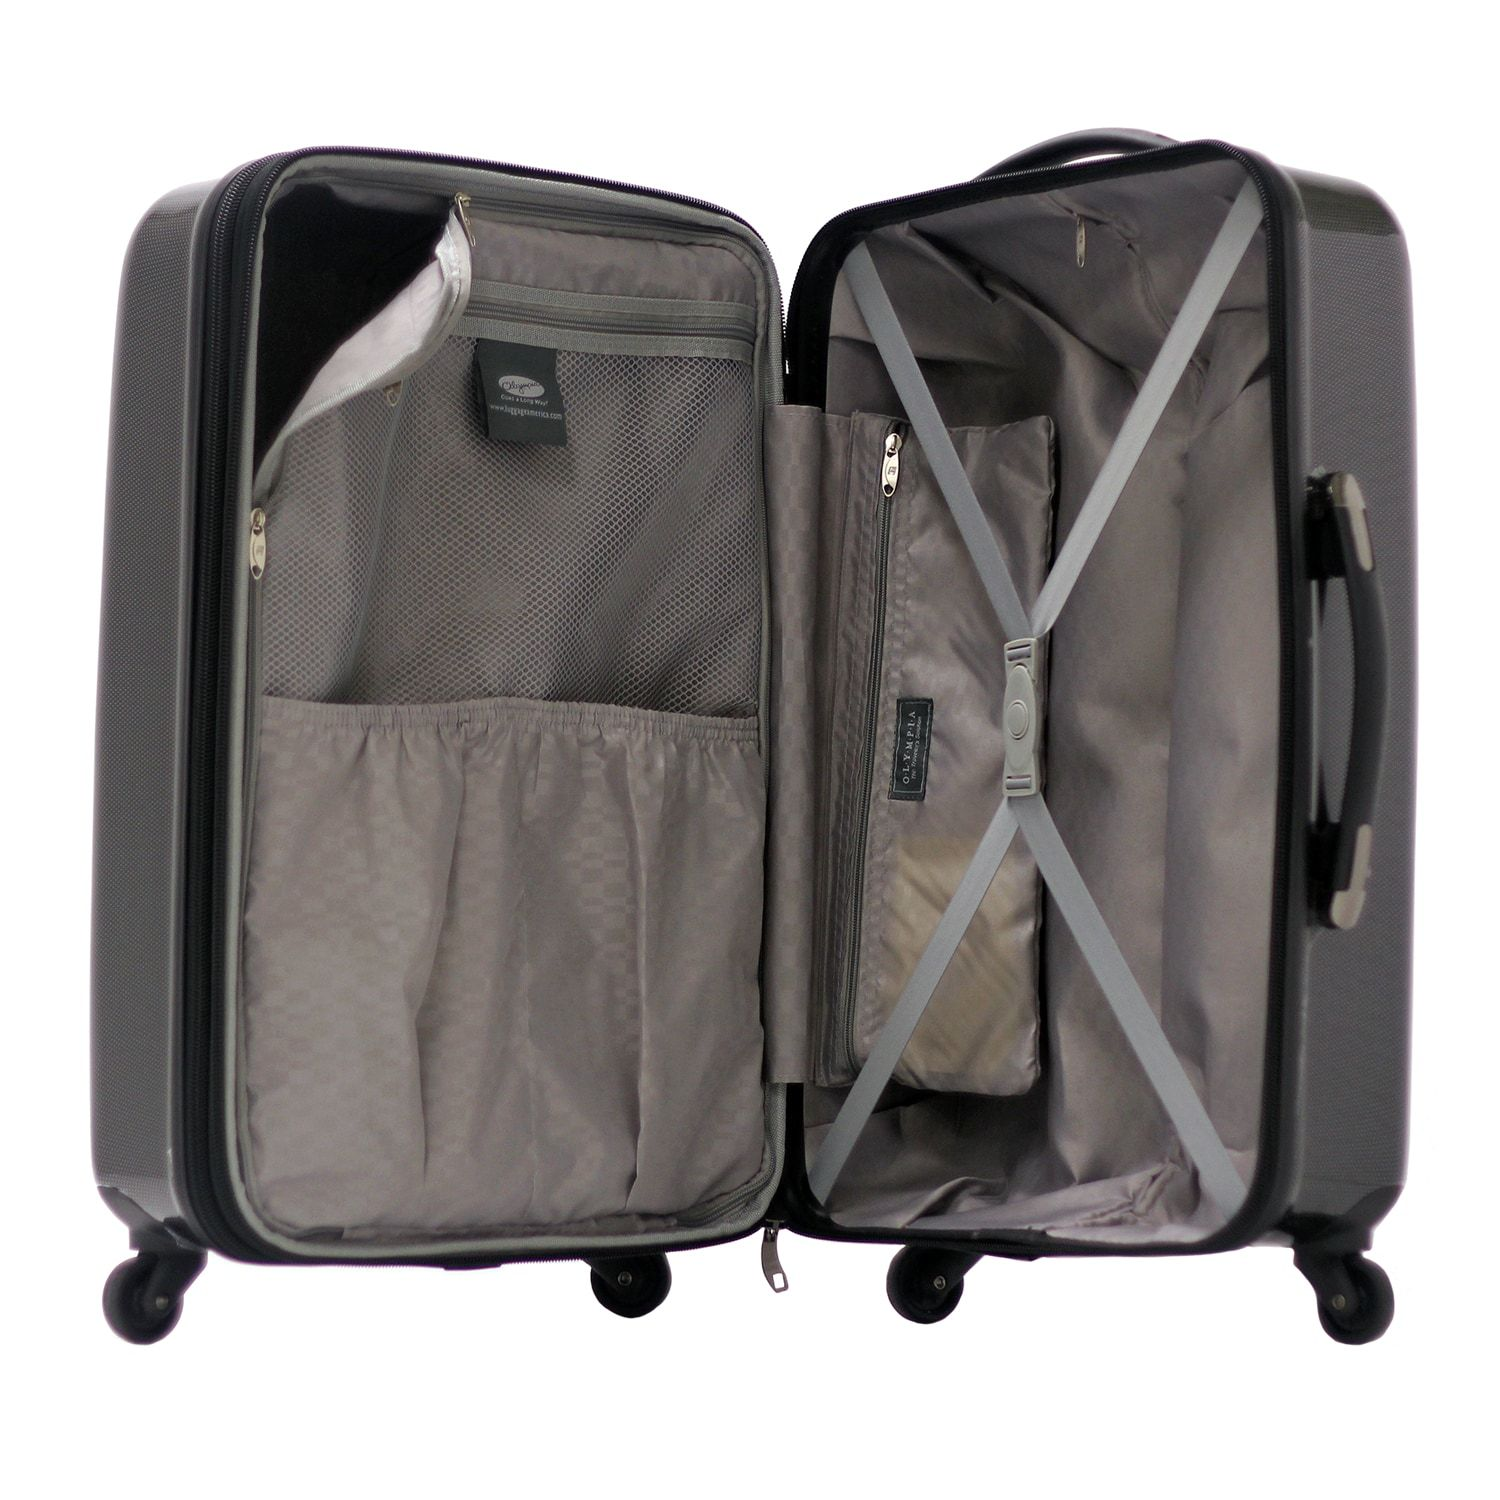 d03e60ef5 Olympia Titan 29-Inch Spinner Luggage #Titan, #Olympia, #Luggage, #Spinner